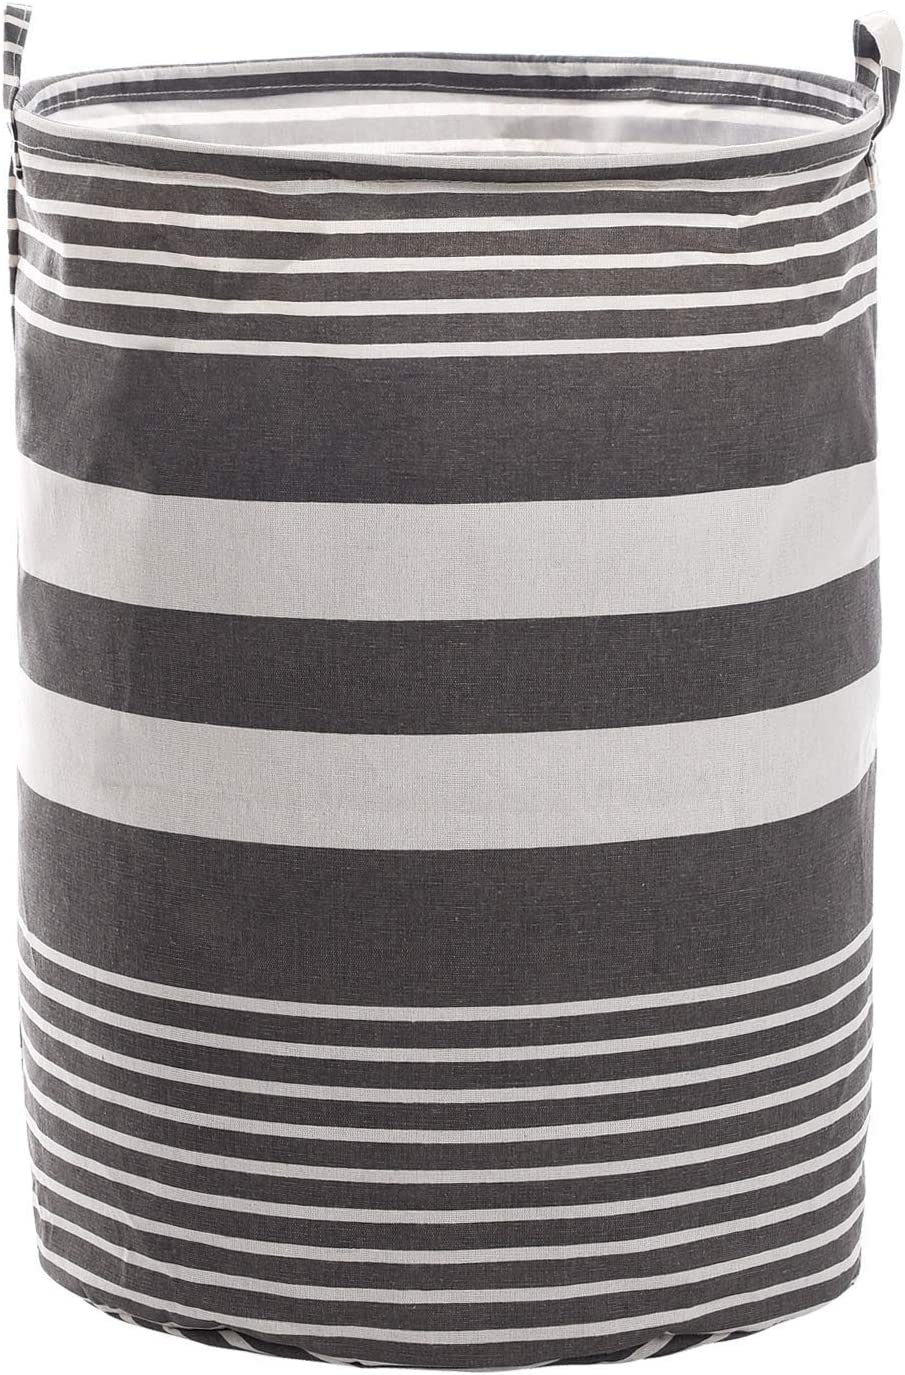 Haundry Collapsible Laundry Basket, 22'' Tall Large Round Laundry Hamper for Clothes Storage